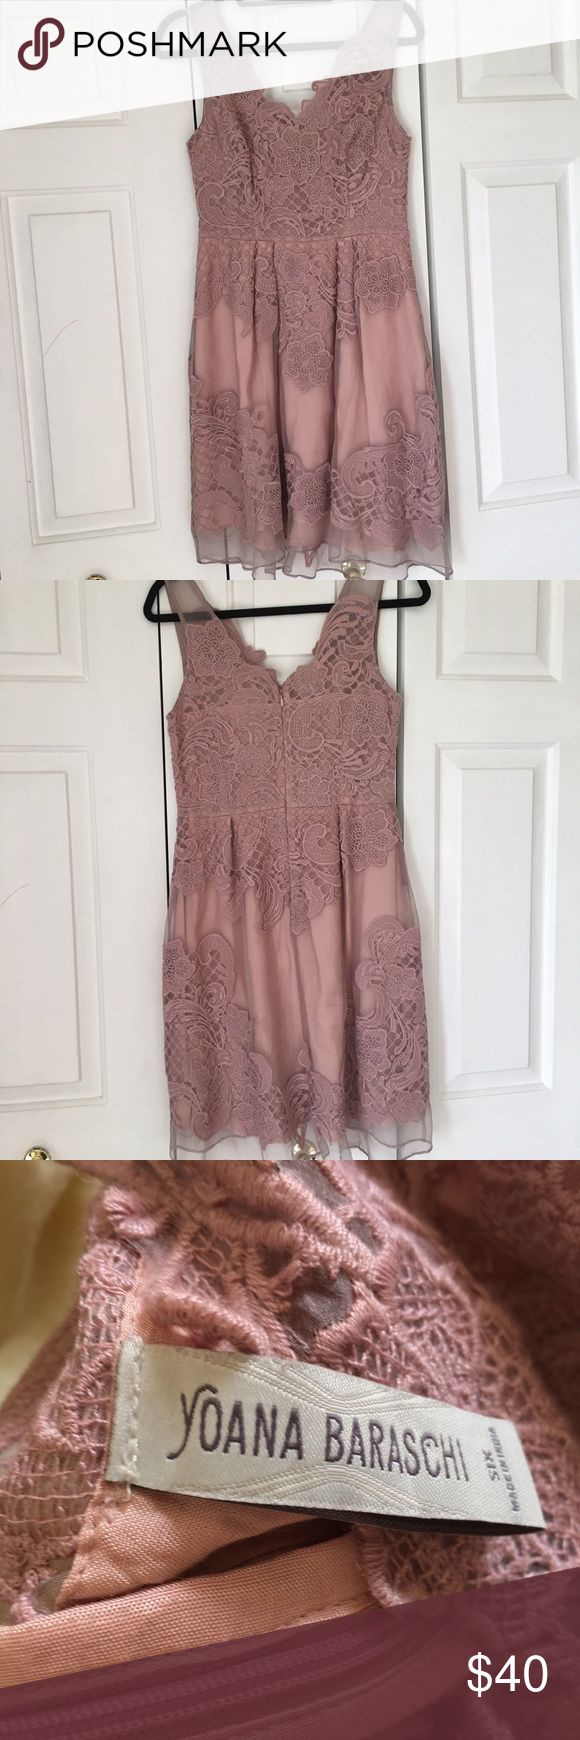 NWOT pink baraschi lace tuelle dress Bought for a party and never wore. Super beautiful pale pink color and lace with sheer fabric. V neck. Retails $160 Anthropologie Dresses Midi